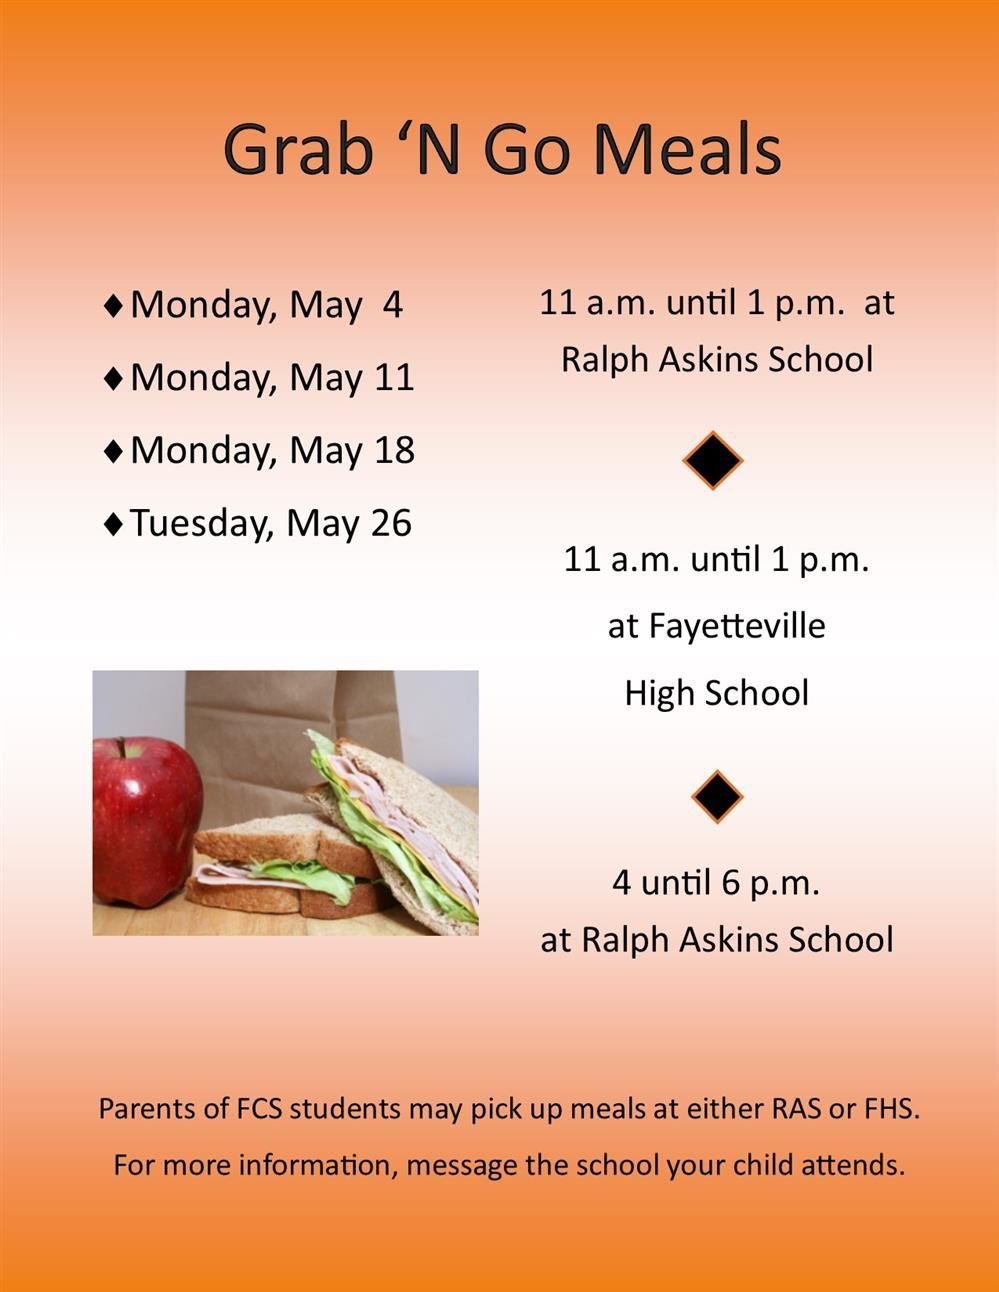 Grab 'N Go Meals to be distributed through May